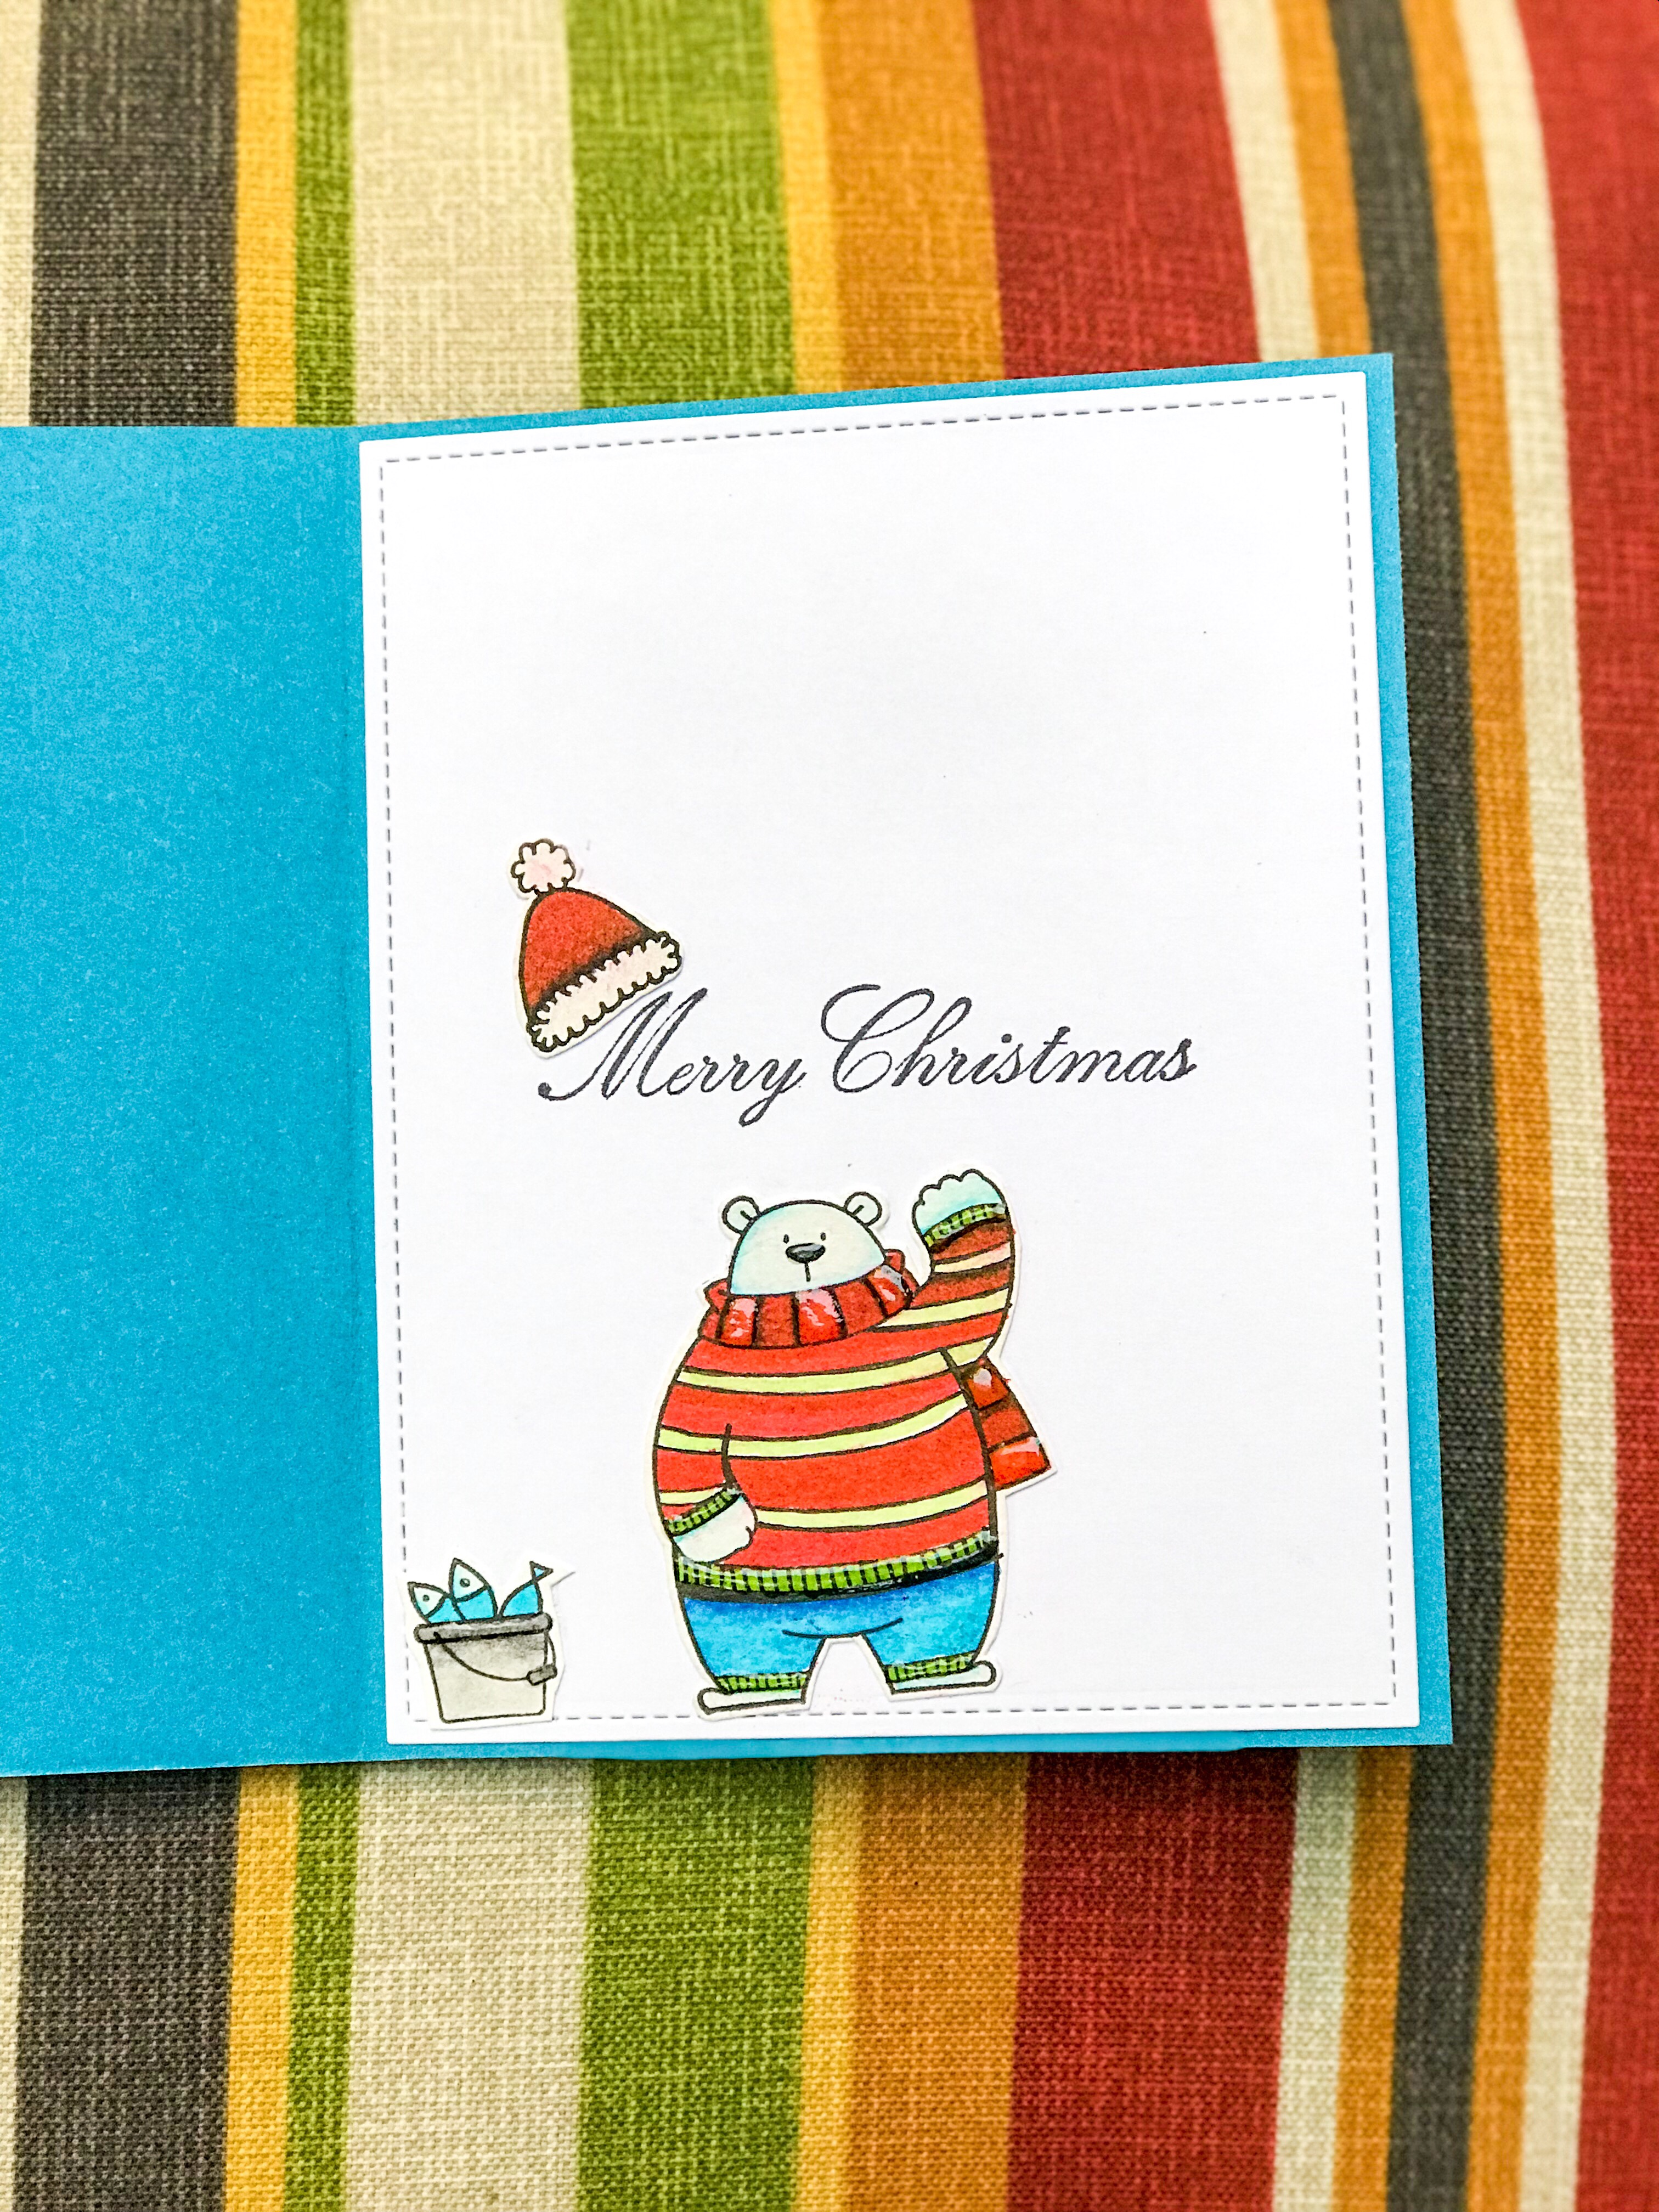 Greetings From The North Pole Artful Geet Creations